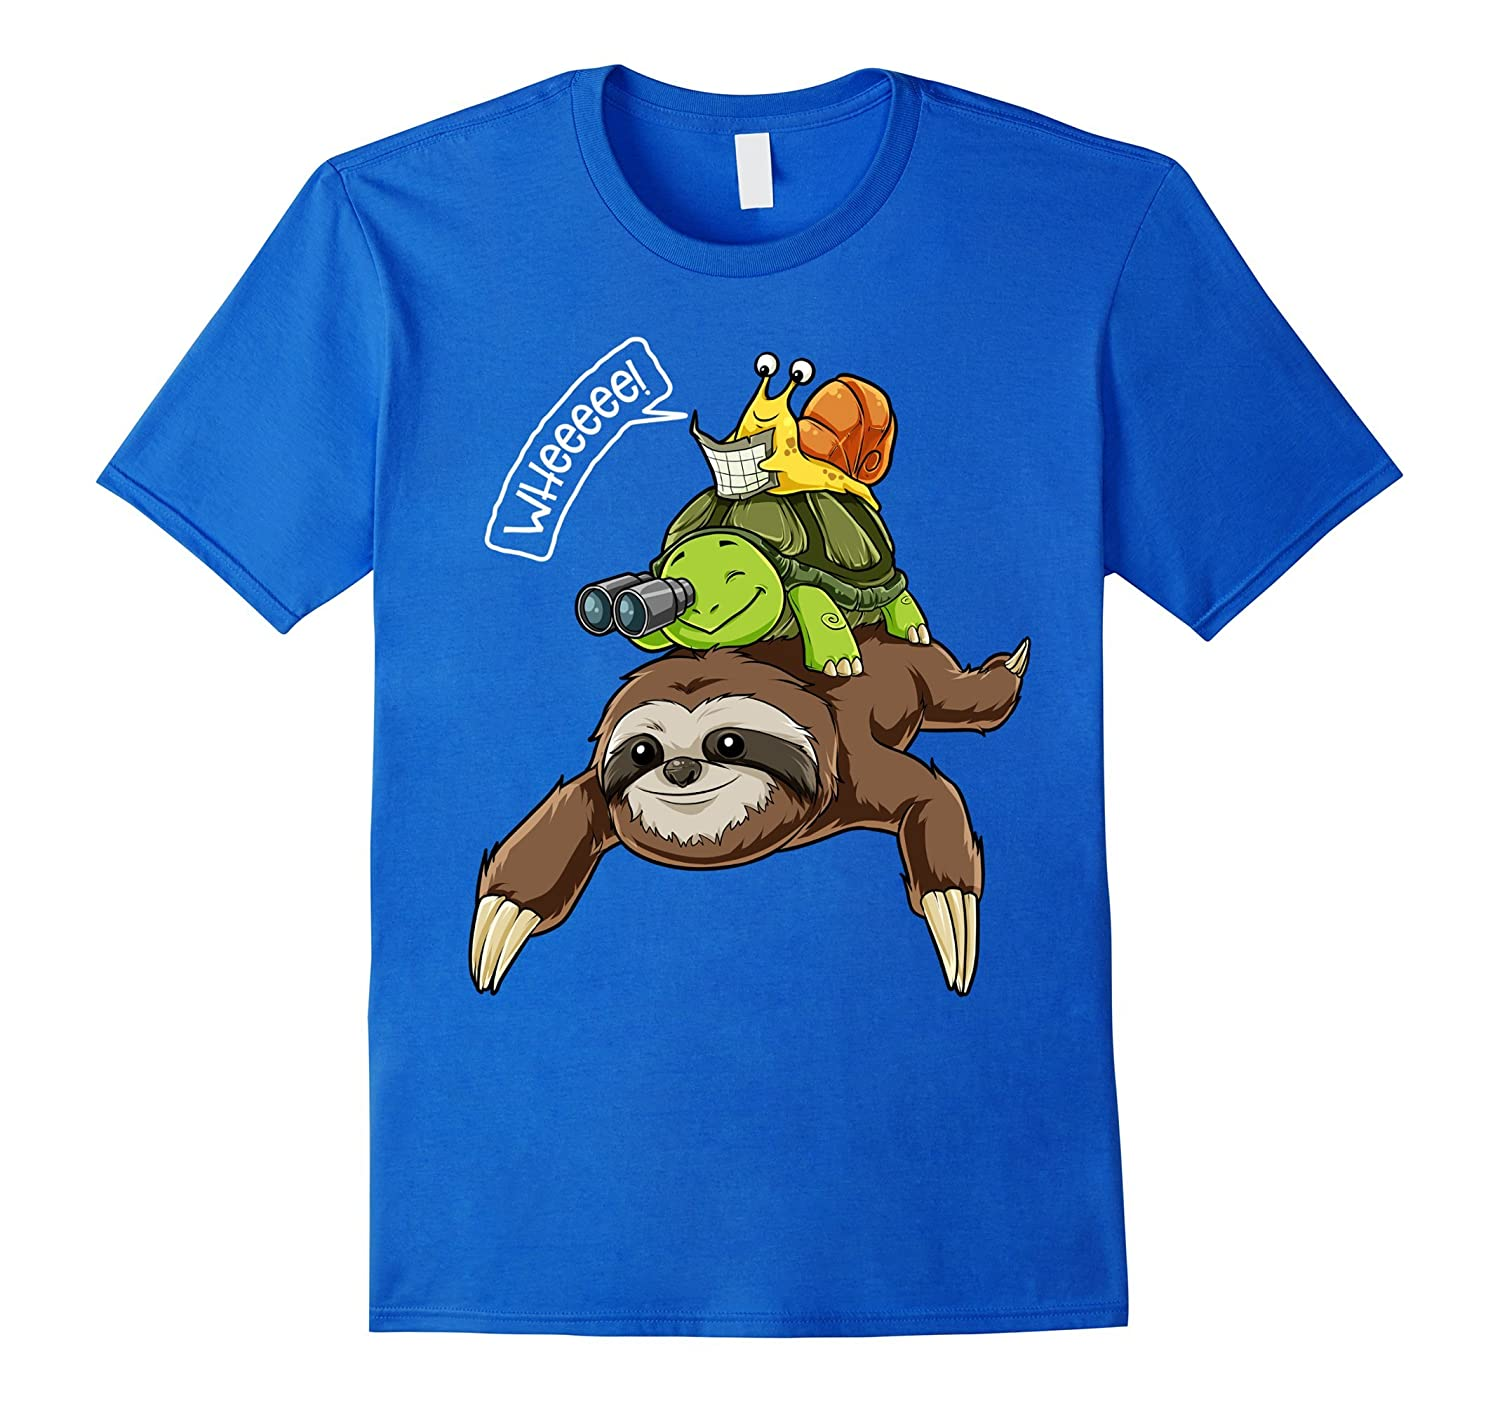 Turtle Snails Ride Sloth Baby Girl 100/% Cotton T-Shirts Toddler